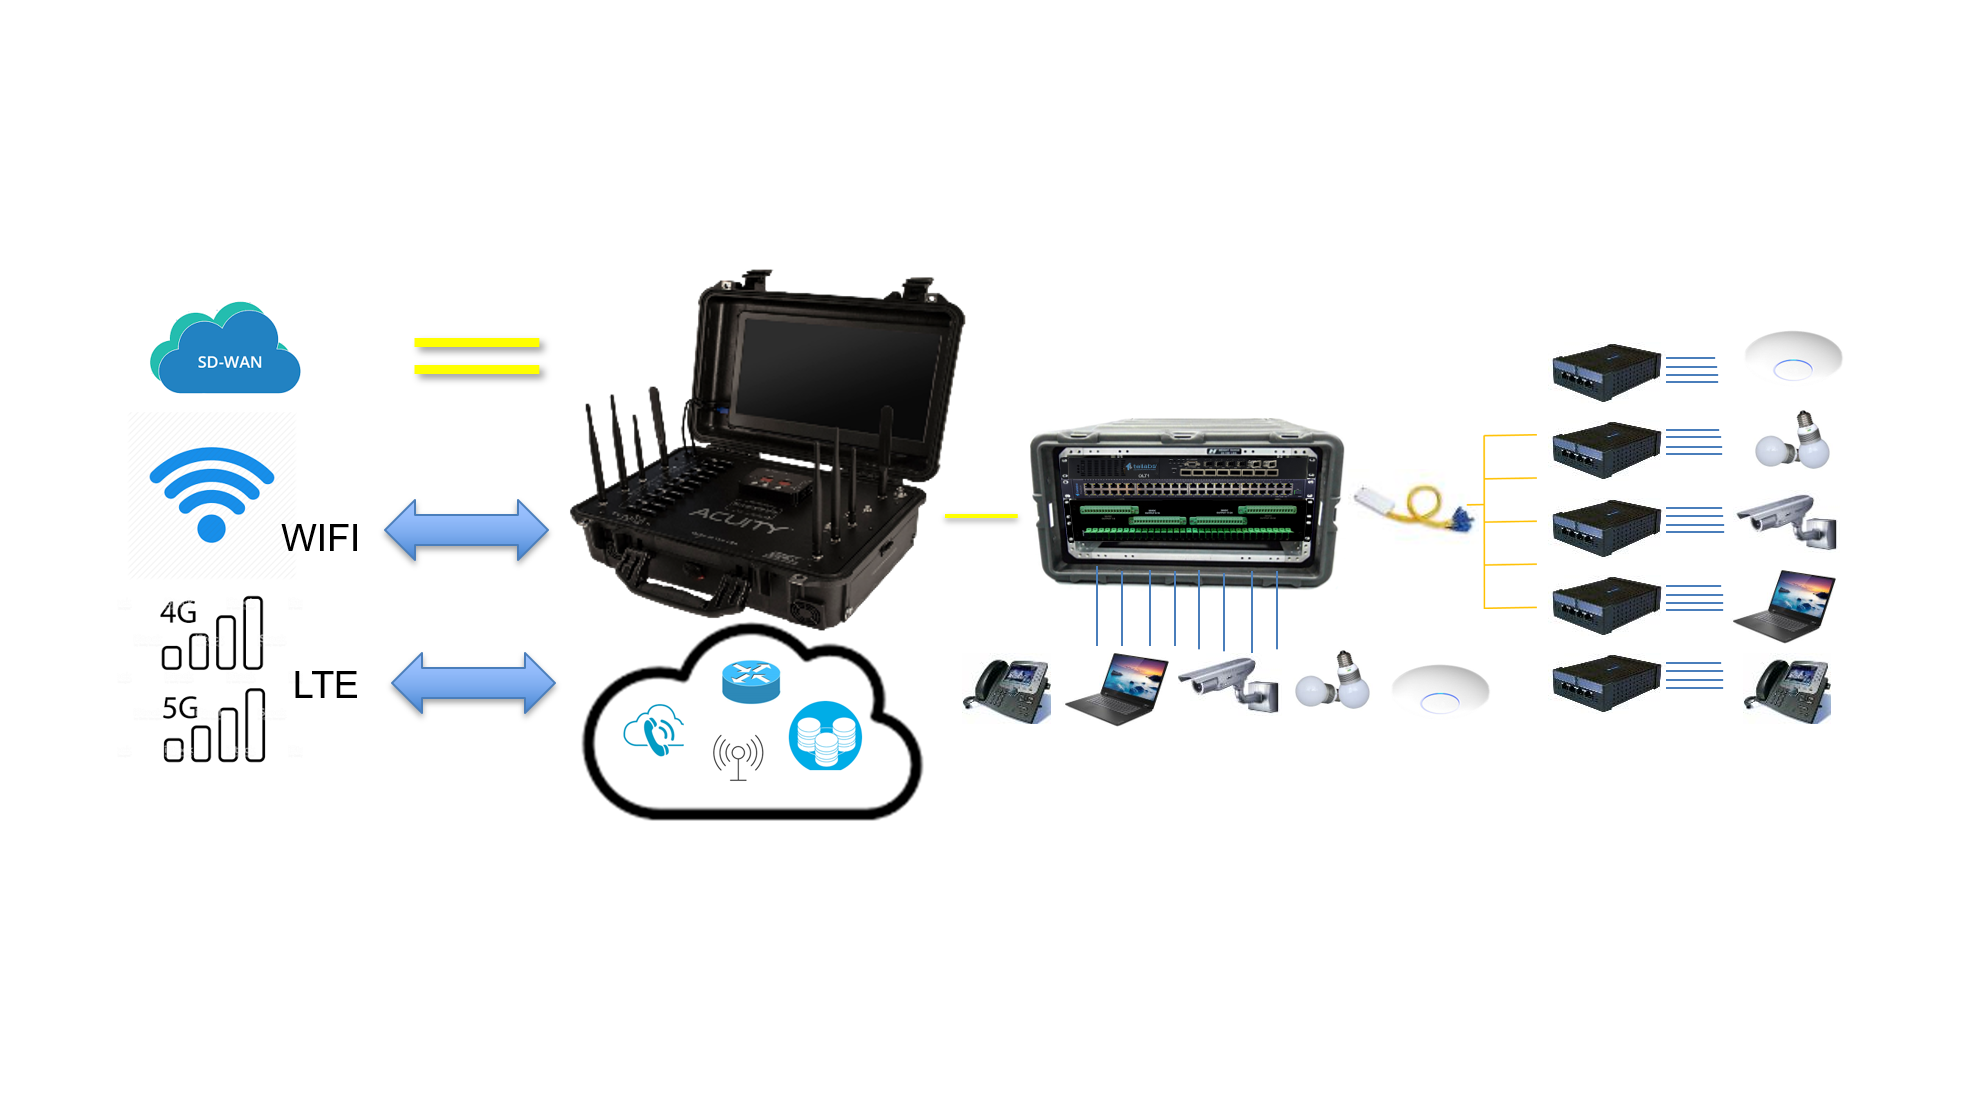 ACUITY LAN tactical, temporary and transportable communications